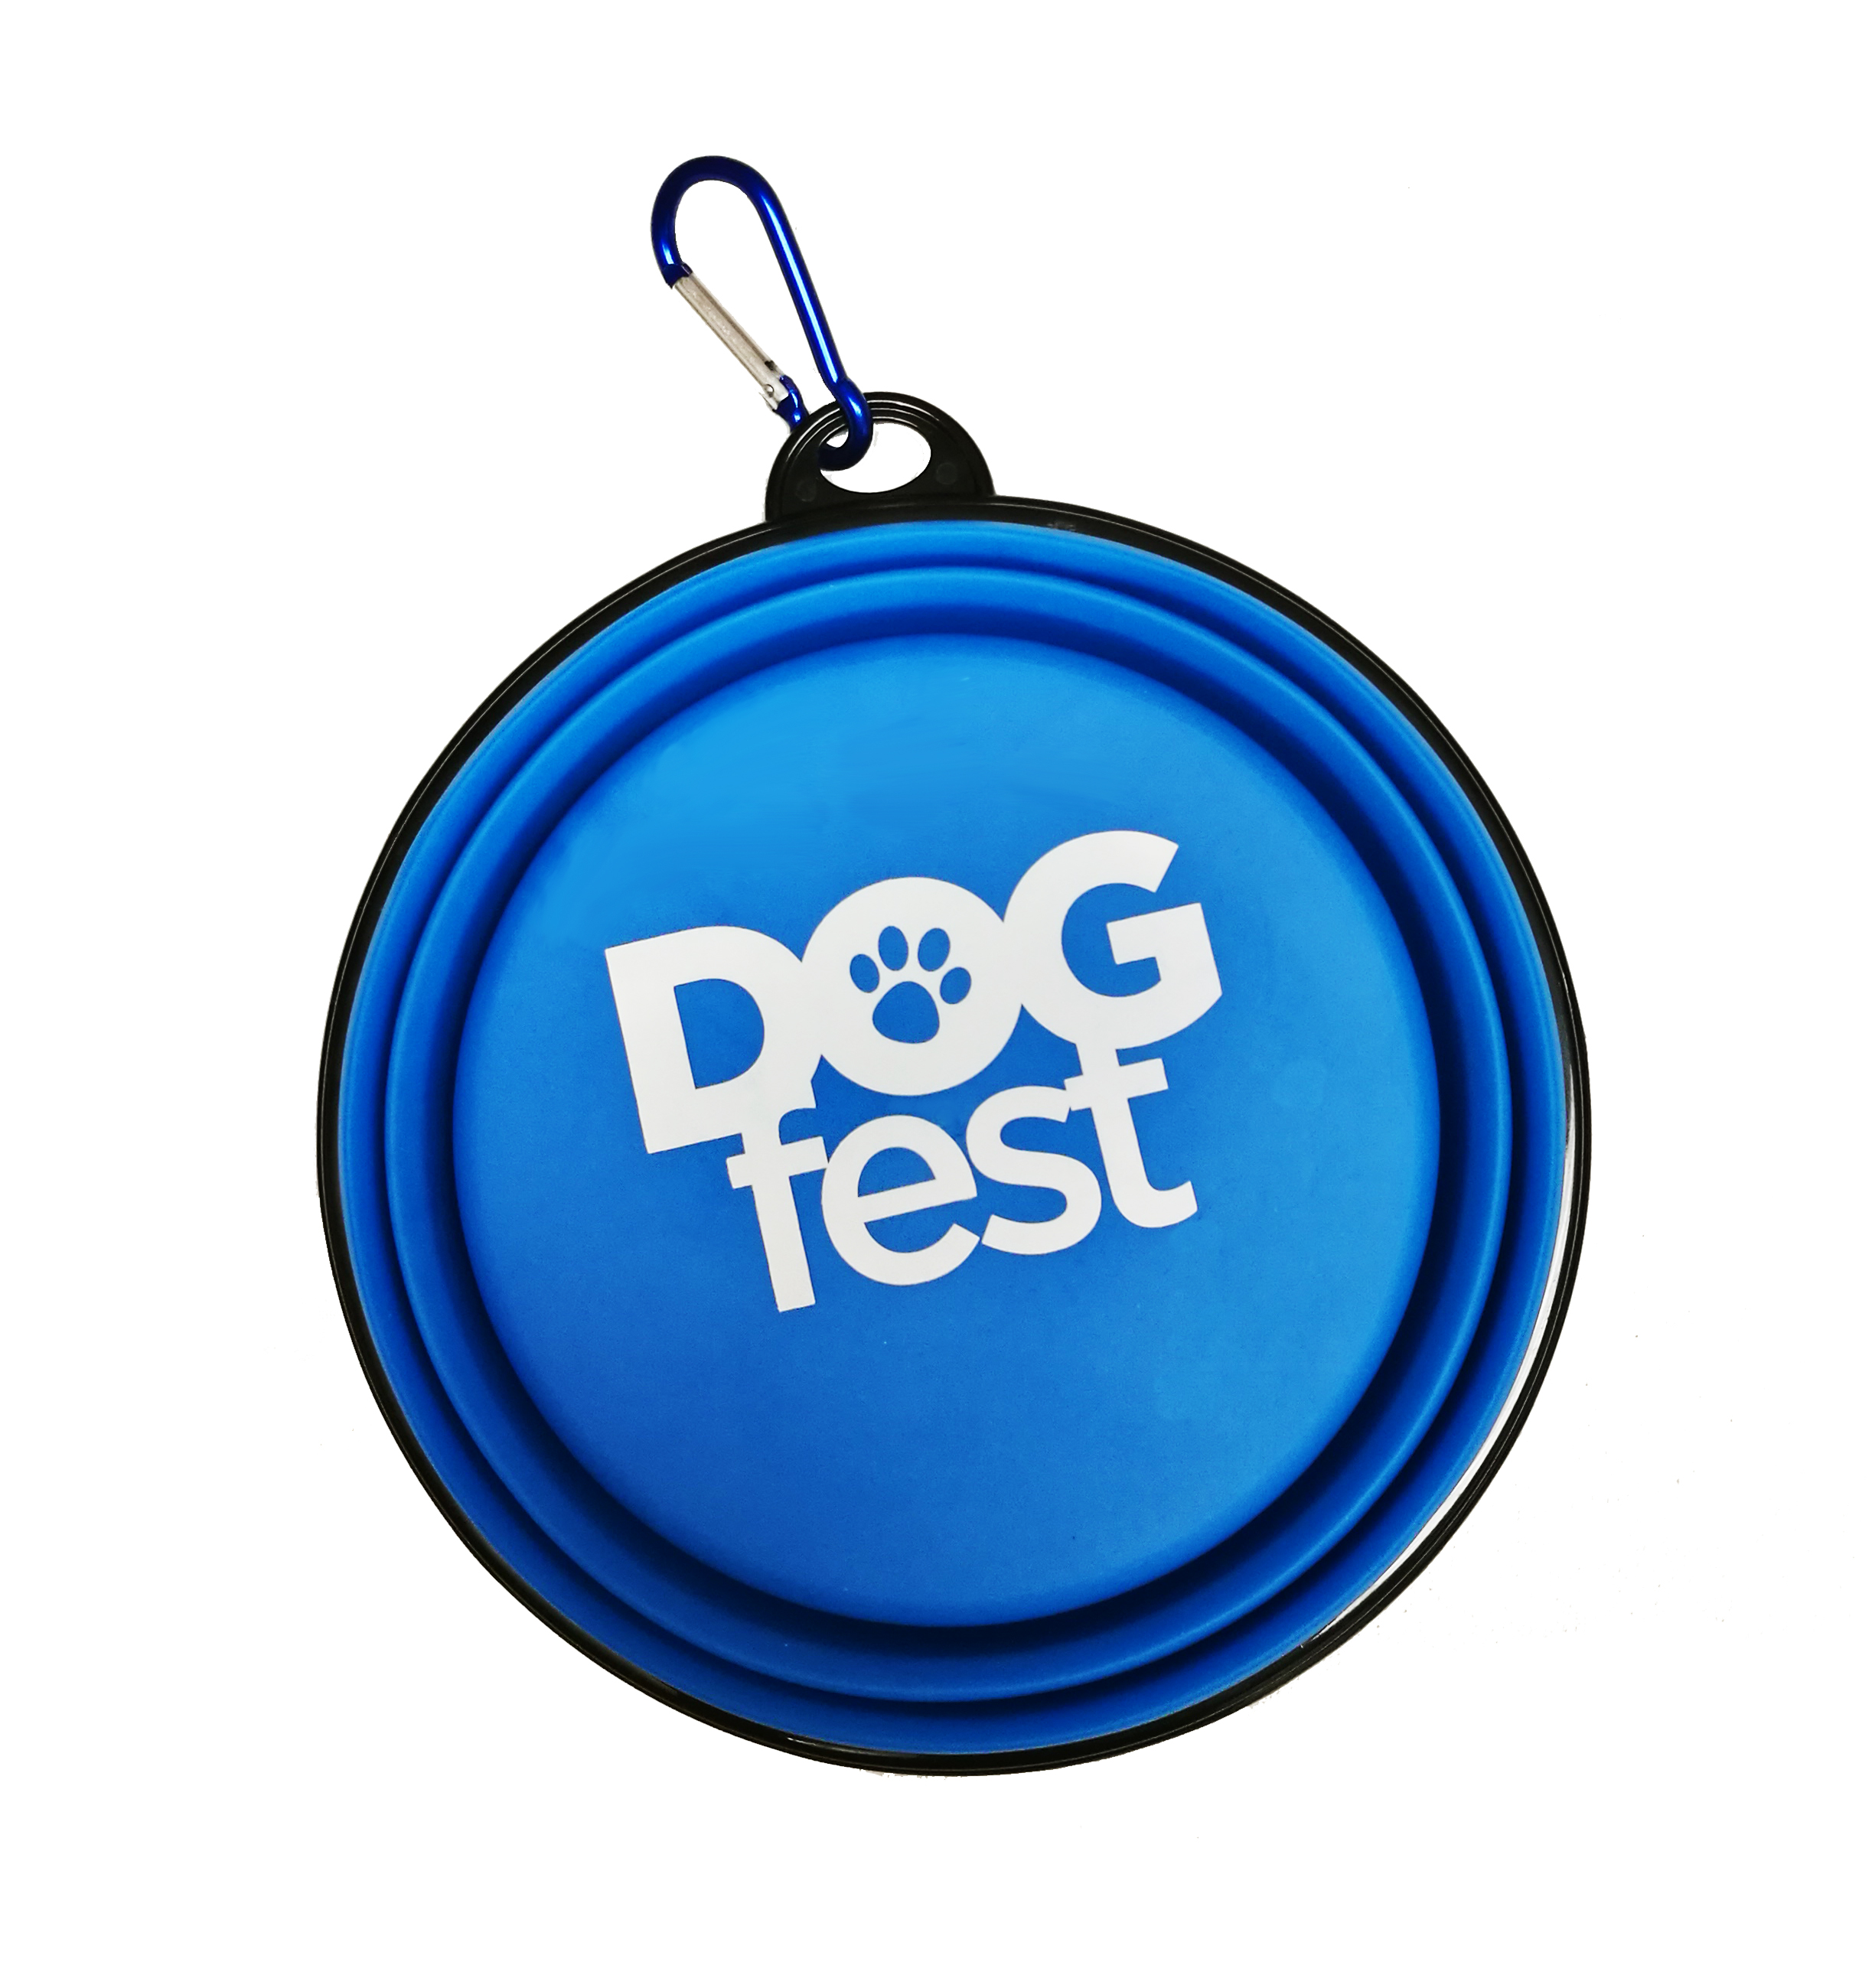 Dogfest Blue Collapsible Dog Bowl - Dogfest